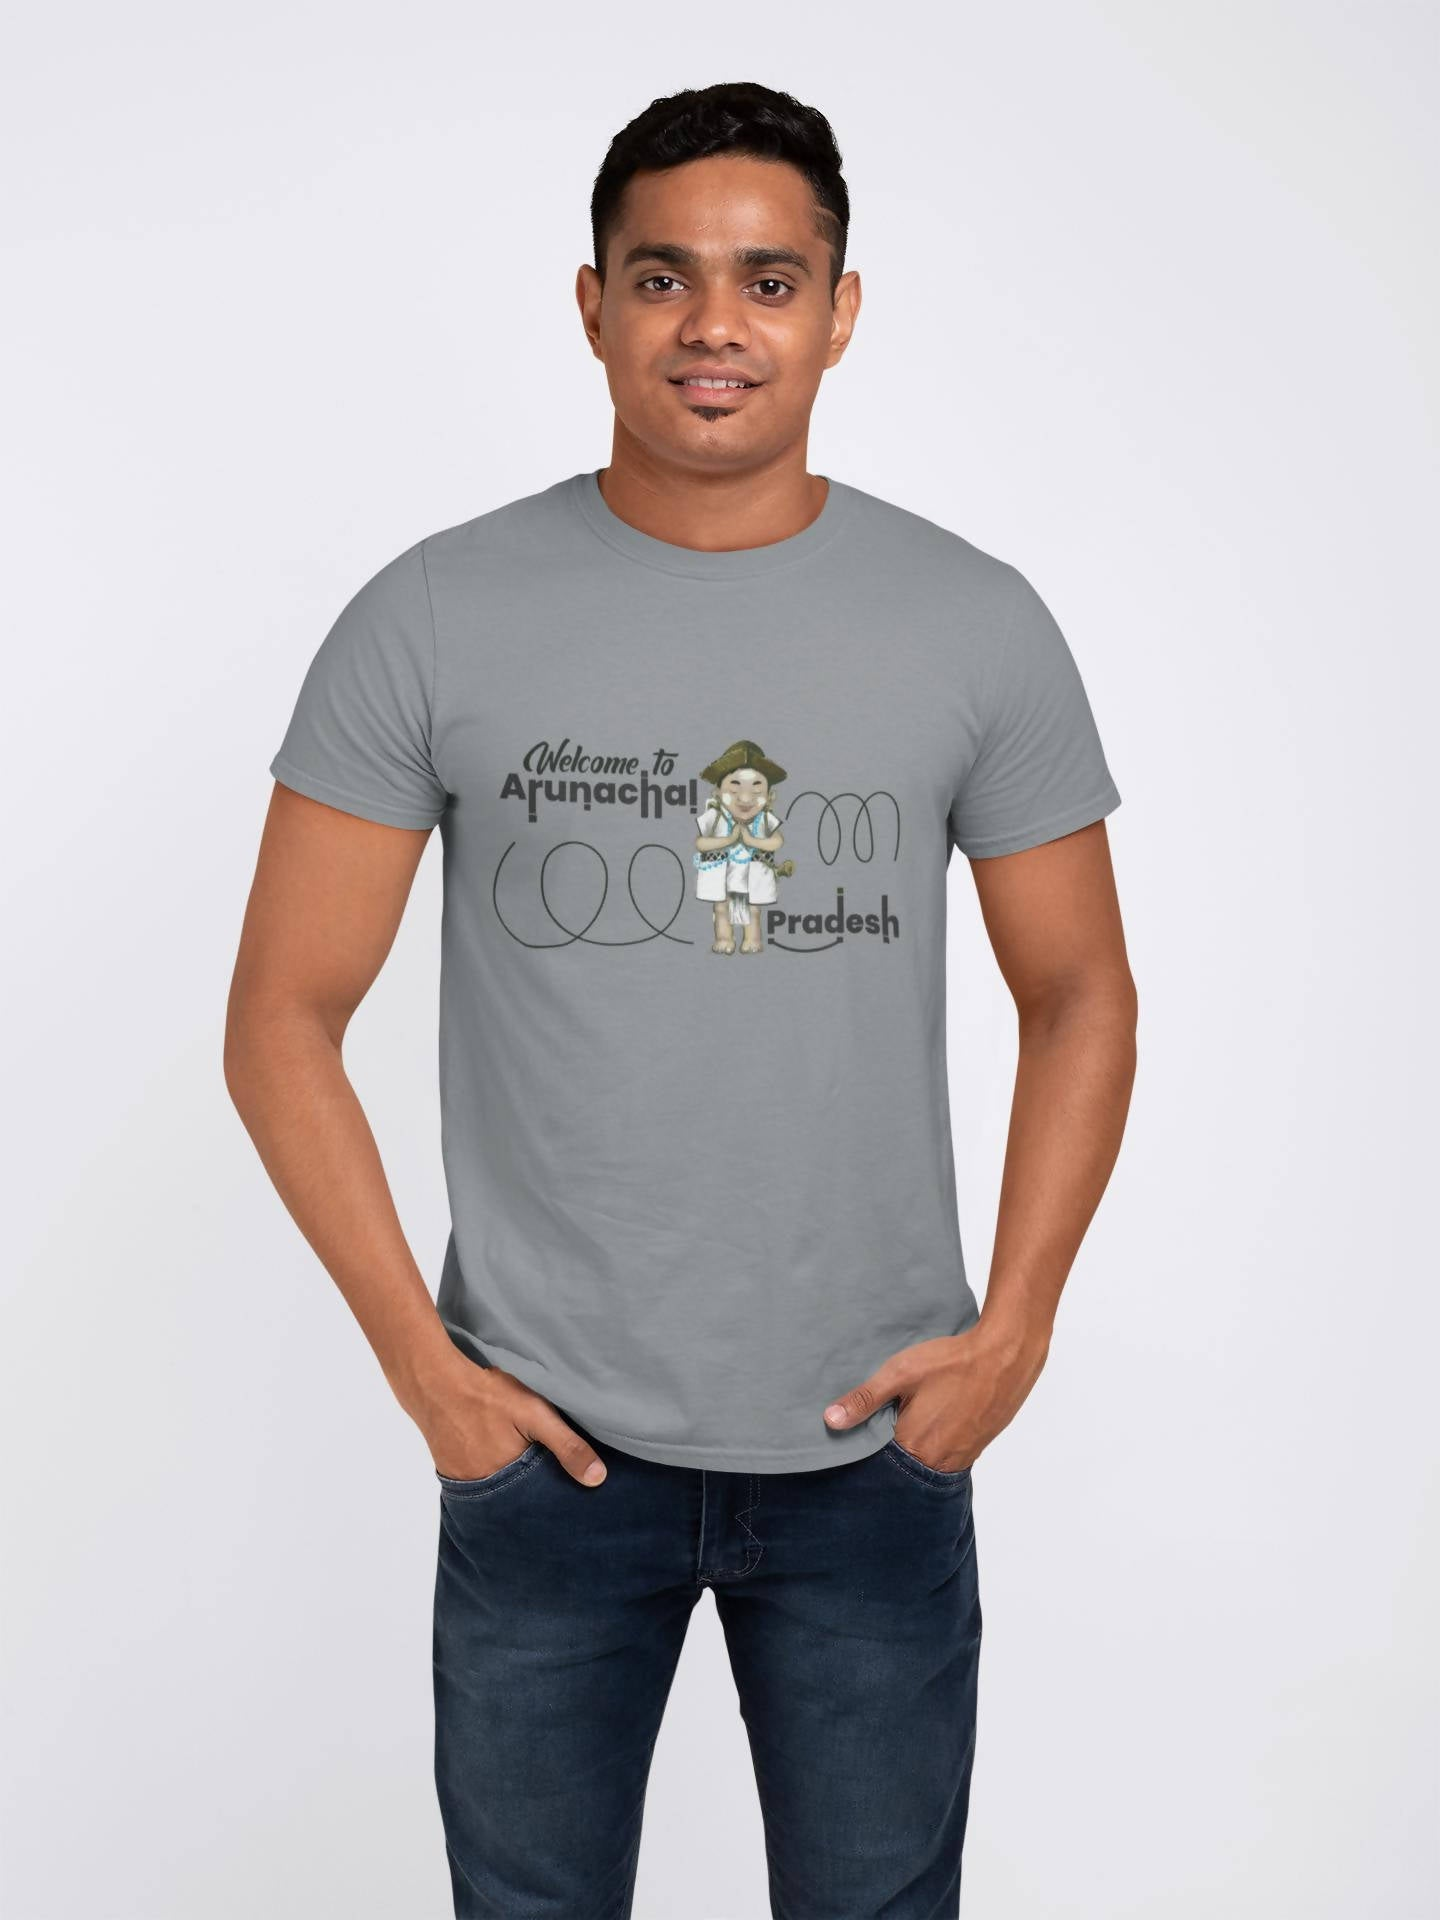 Welcome to arunachal pradesh Printed T-shirt -ItaMoto Fashions